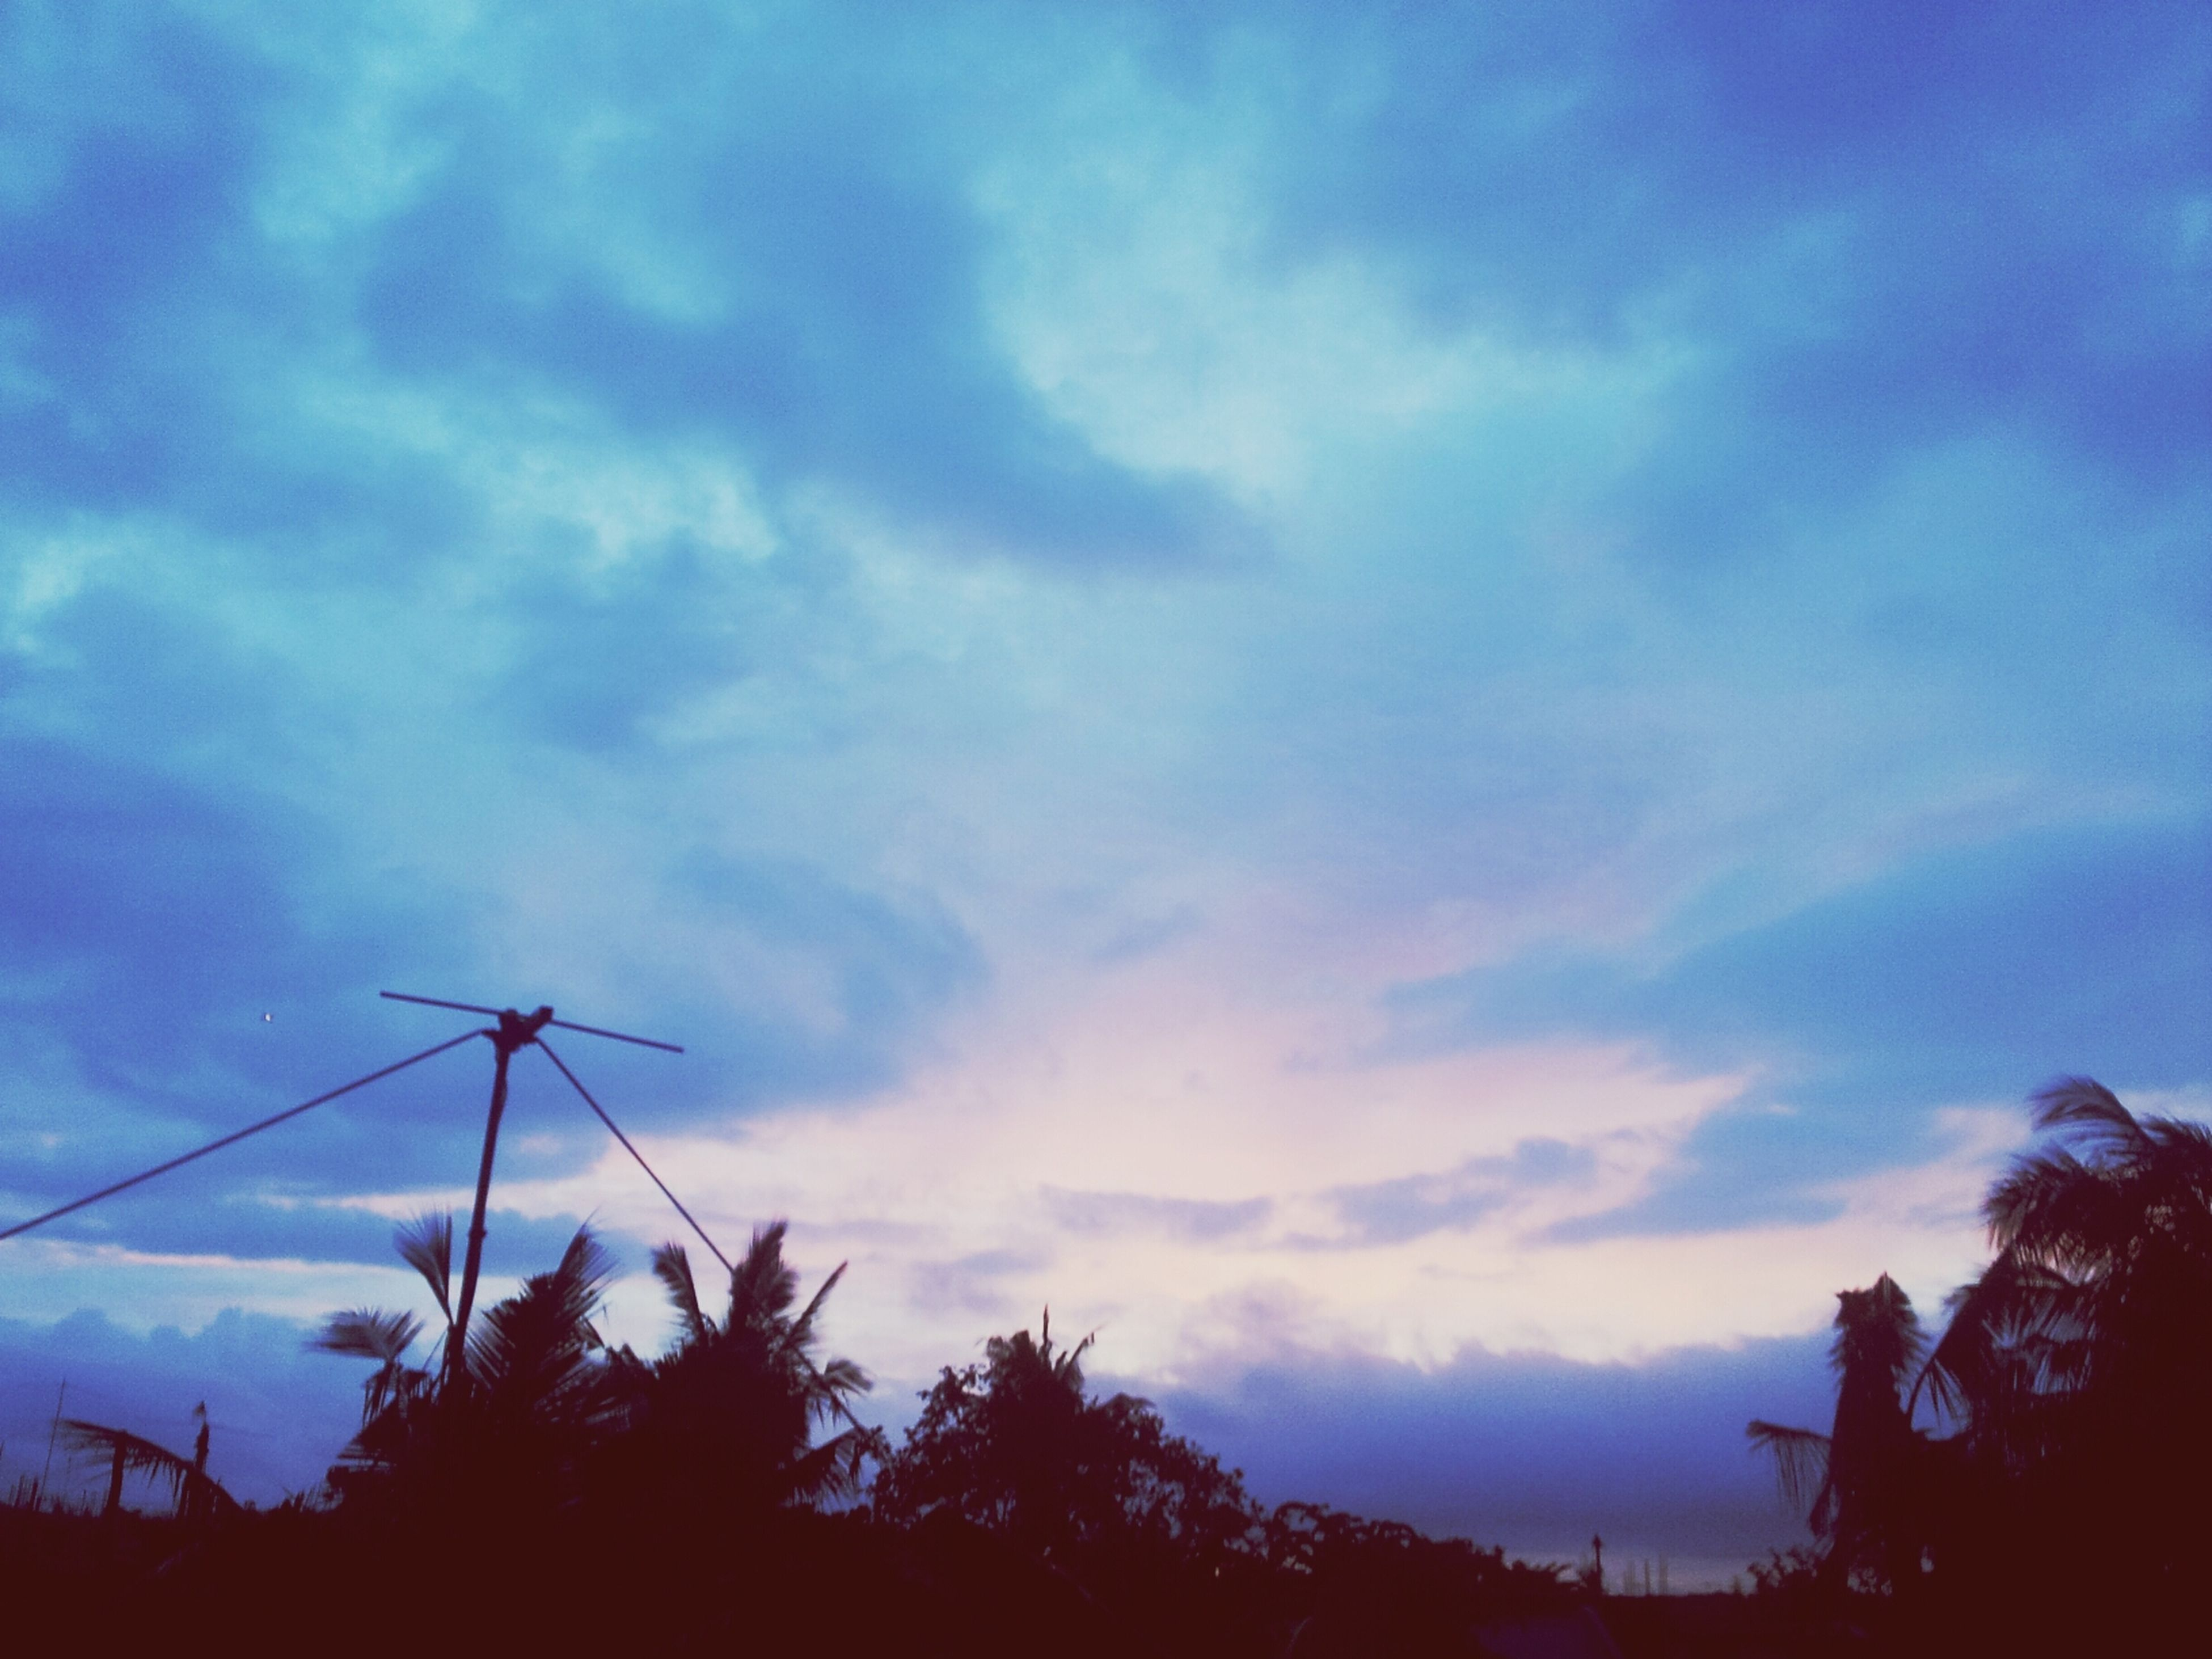 silhouette, sky, tree, low angle view, cloud - sky, tranquility, beauty in nature, nature, cloud, sunset, cloudy, tranquil scene, dusk, scenics, growth, blue, outdoors, no people, power line, high section